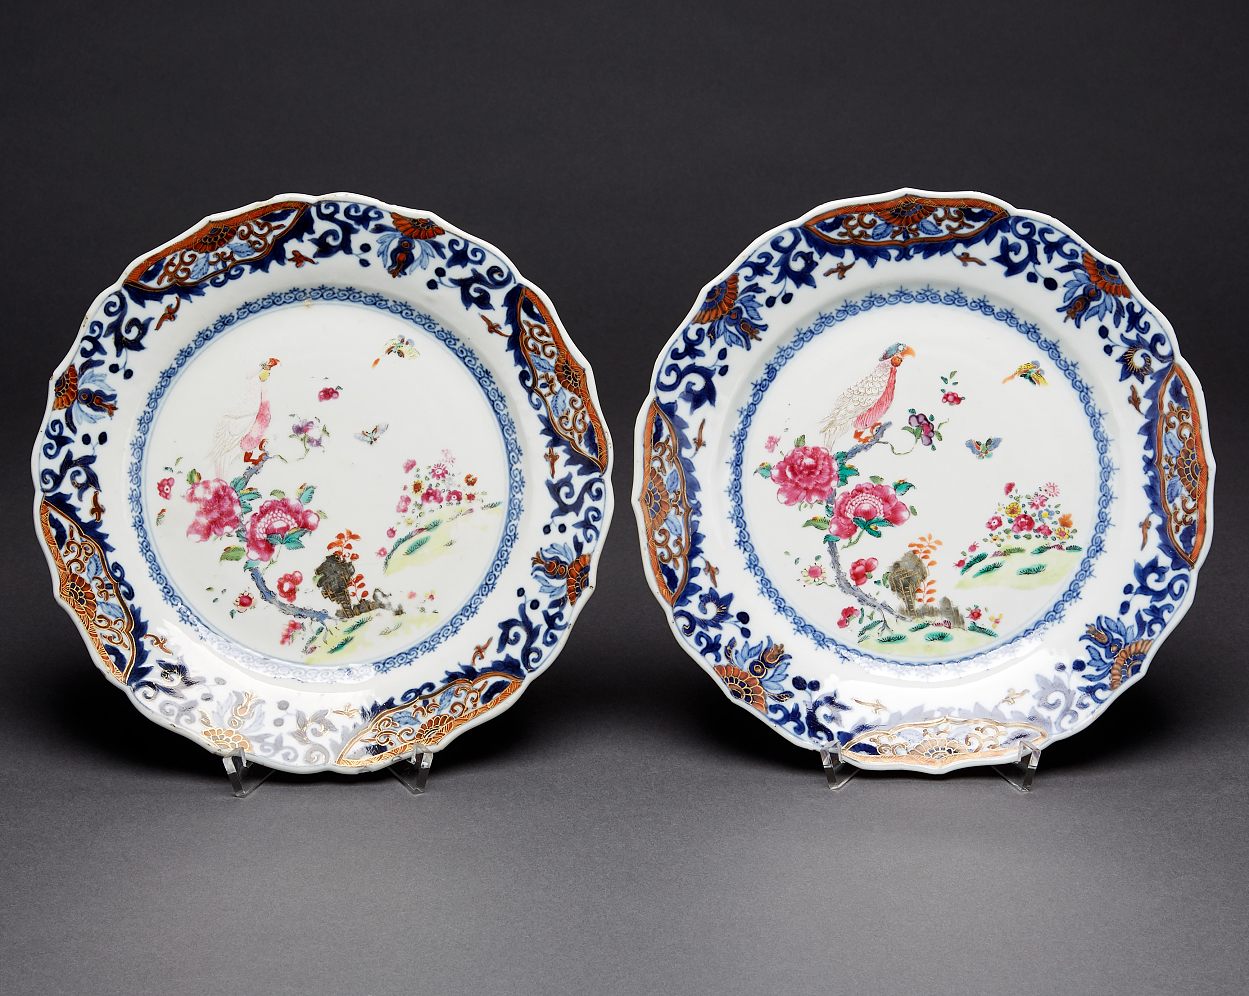 A Small Dish and A Pair of Plates